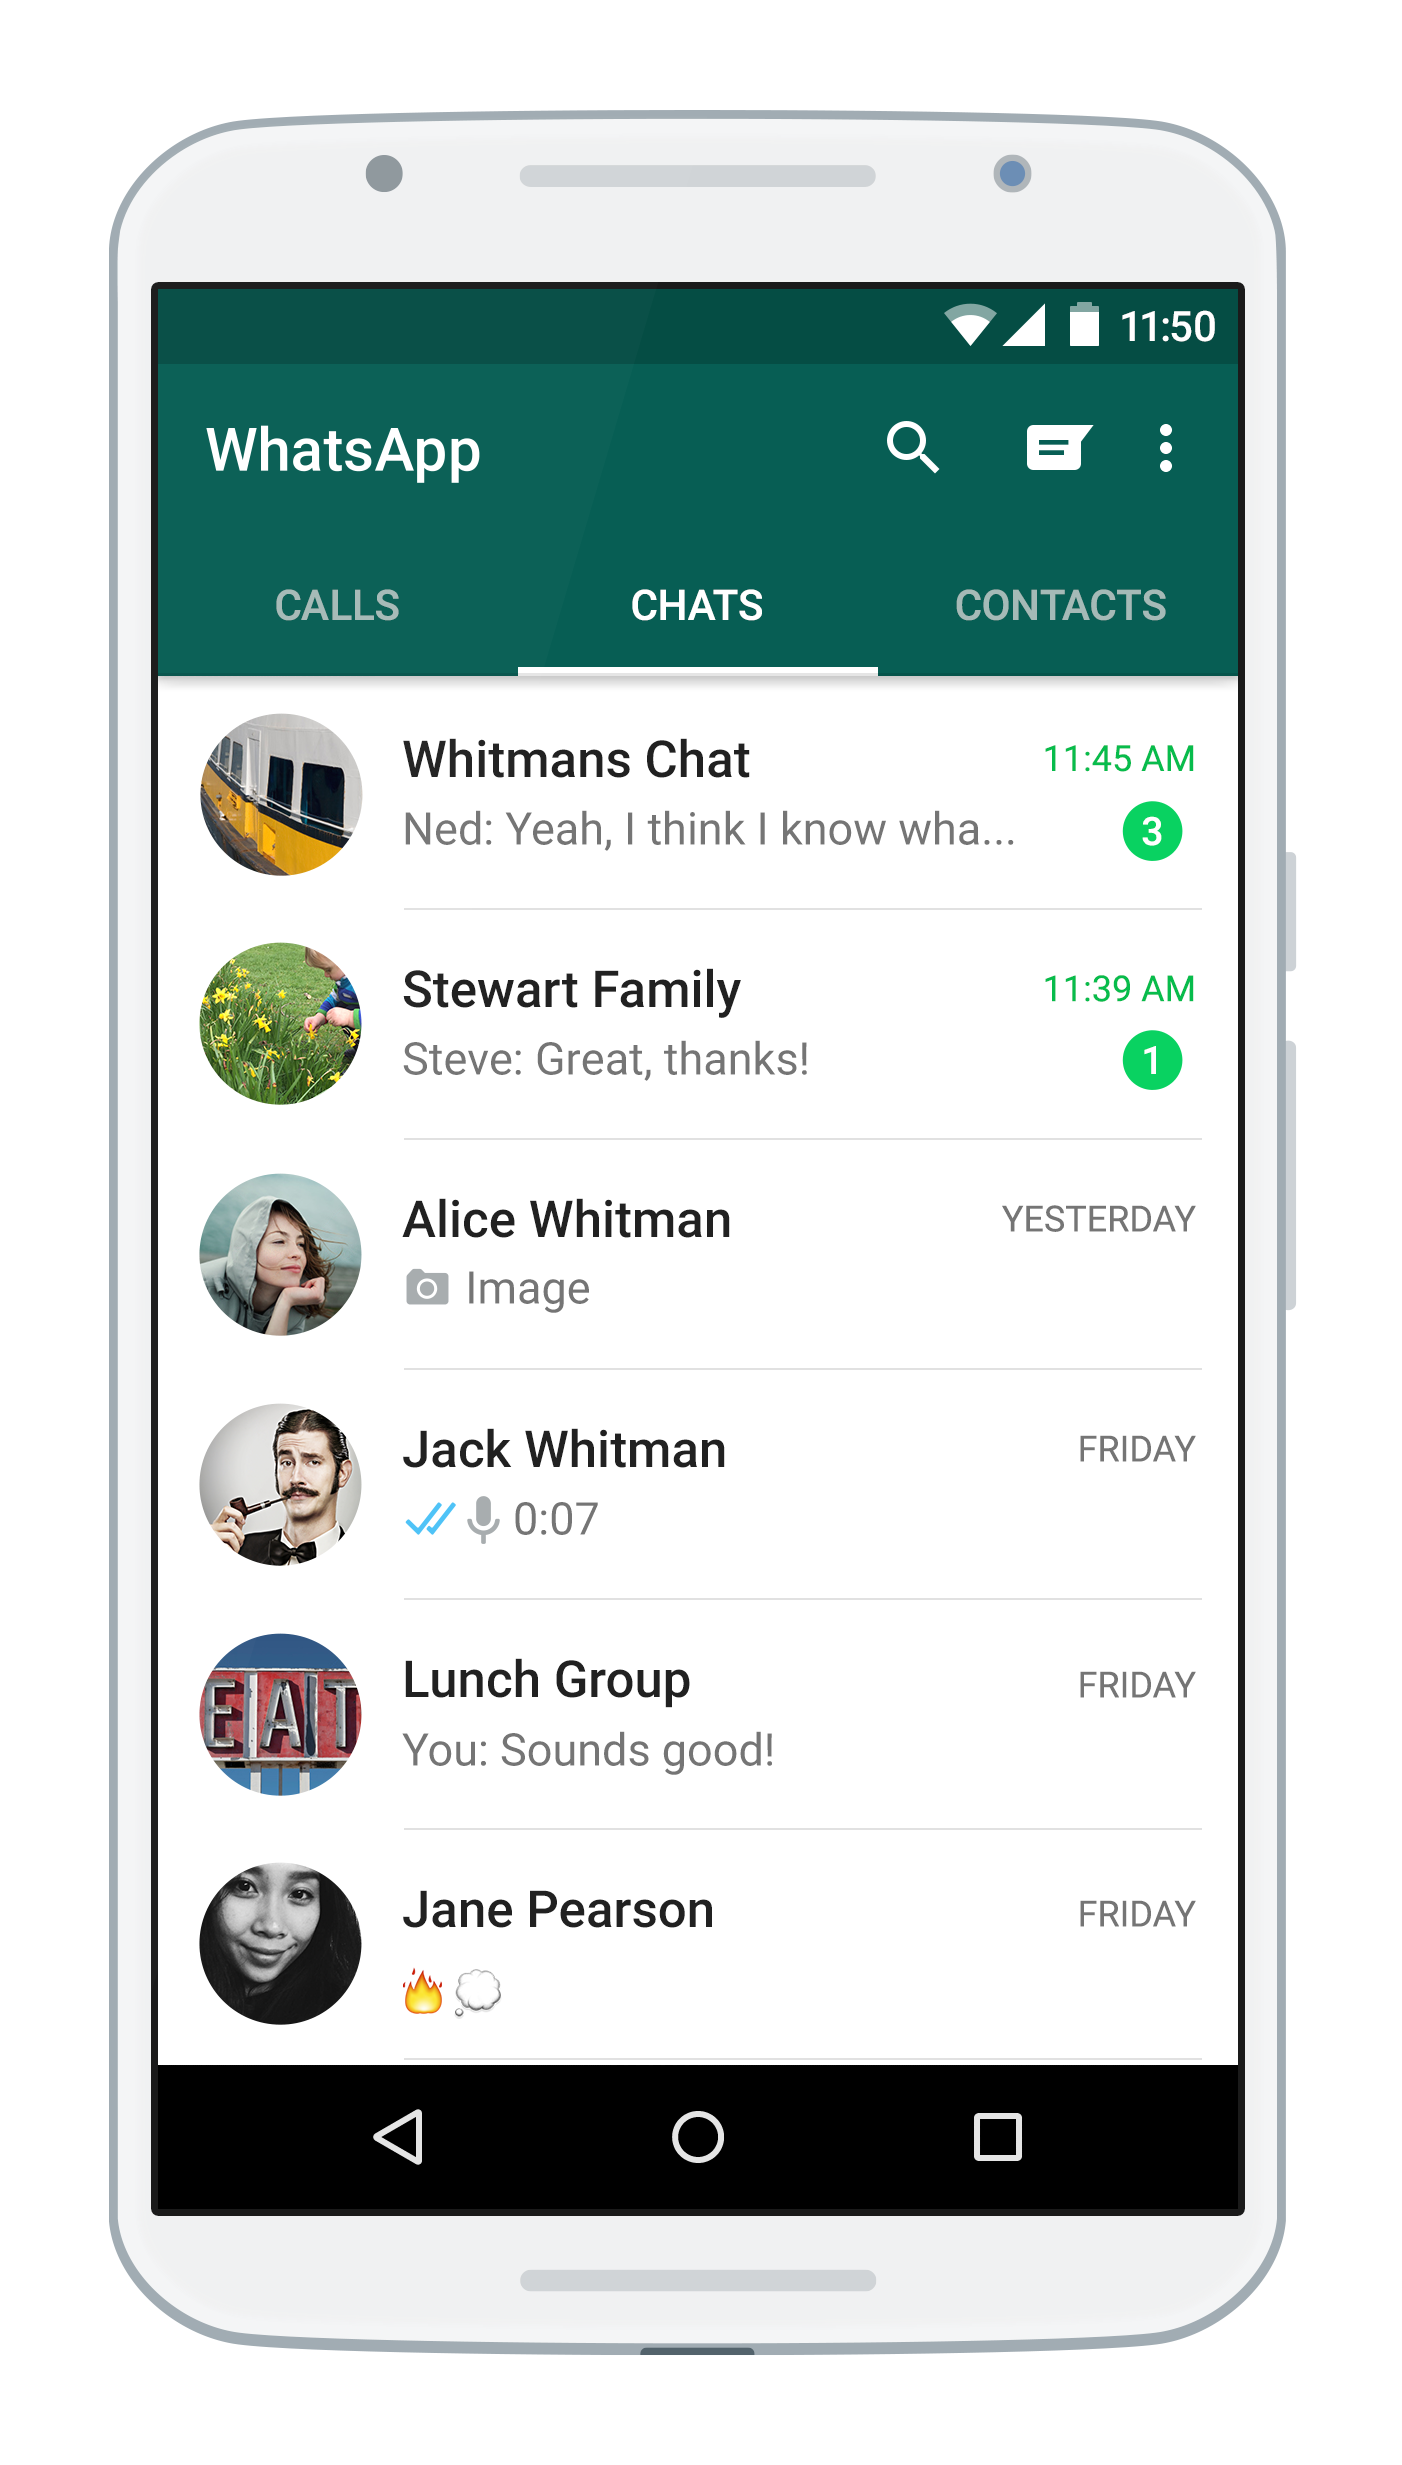 WhatsApp Android screenshot courtesy of WhatsApp